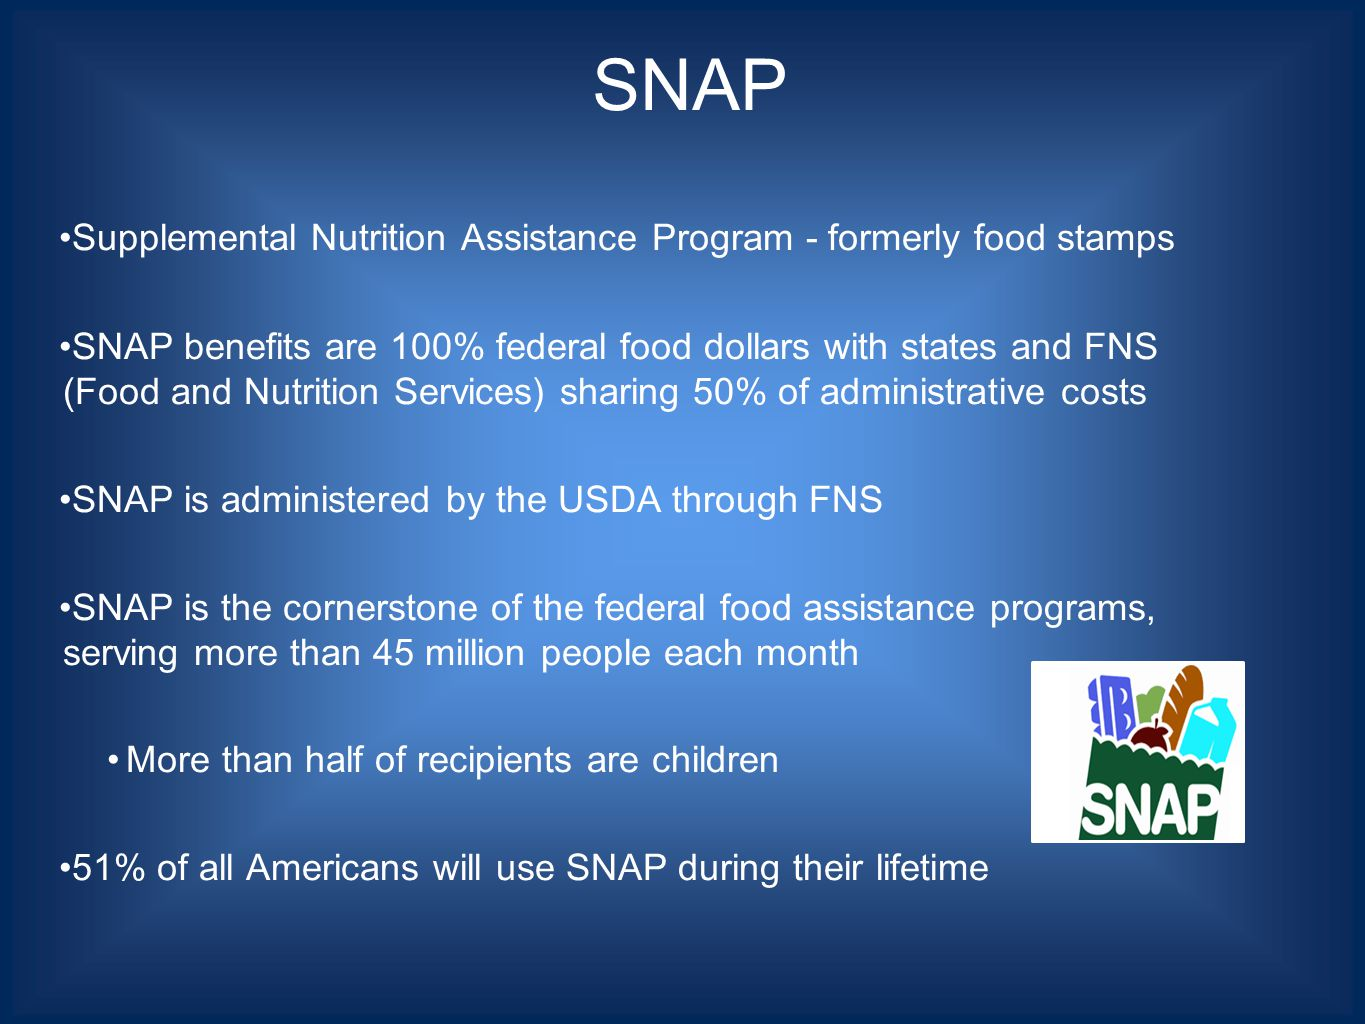 Supplemental Nutrition Assistance Program - formerly food stamps SNAP benefits are 100% federal food dollars with states and FNS (Food and Nutrition Services) sharing 50% of administrative costs SNAP is administered by the USDA through FNS SNAP is the cornerstone of the federal food assistance programs, serving more than 45 million people each month More than half of recipients are children 51% of all Americans will use SNAP during their lifetime SNAP